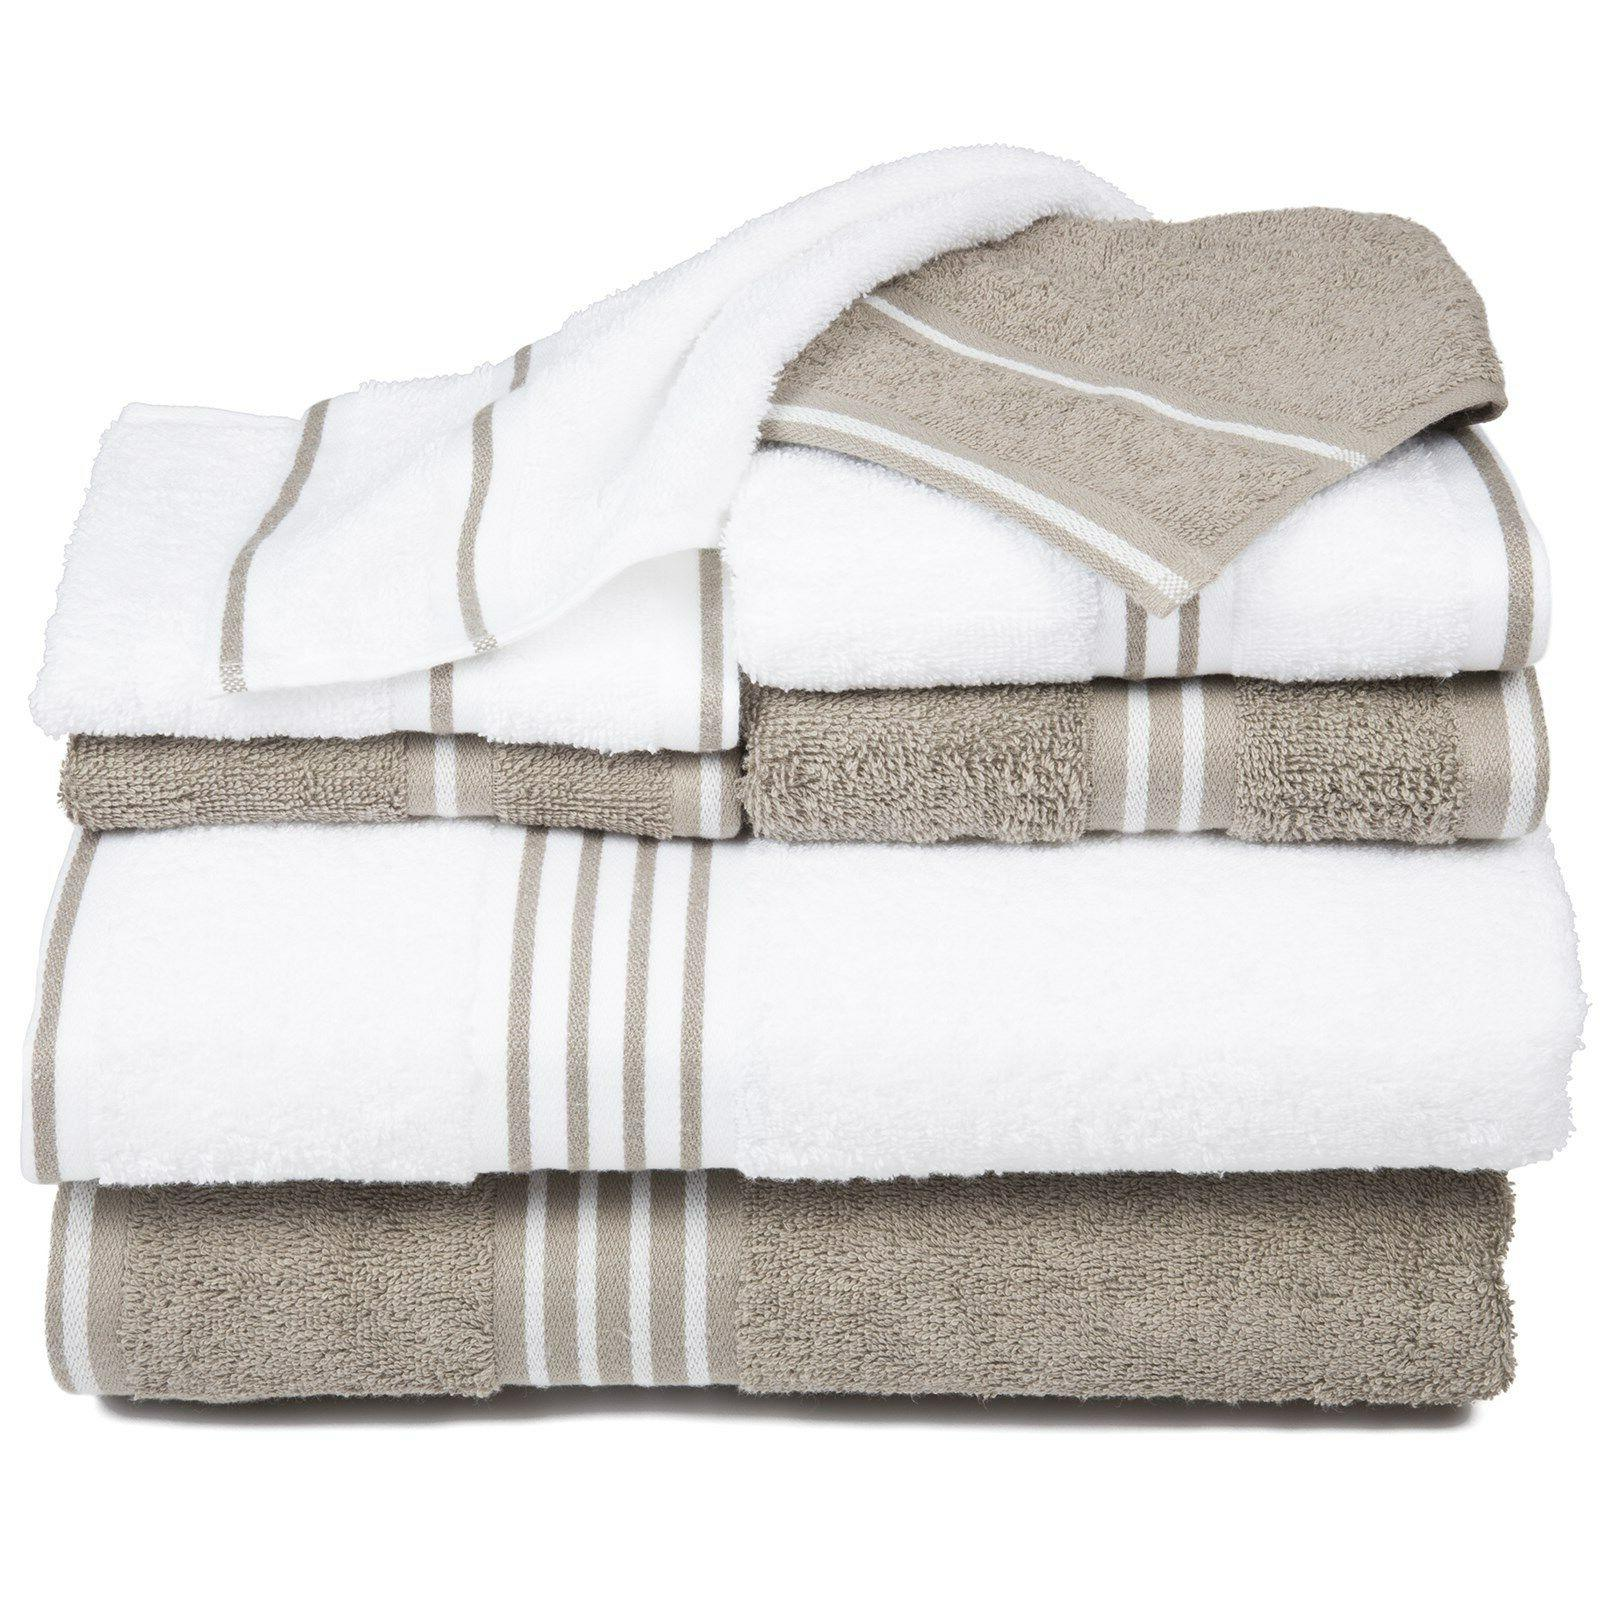 Lavish Home 8 Piece Egyptian Cotton Towel Set White and Taup